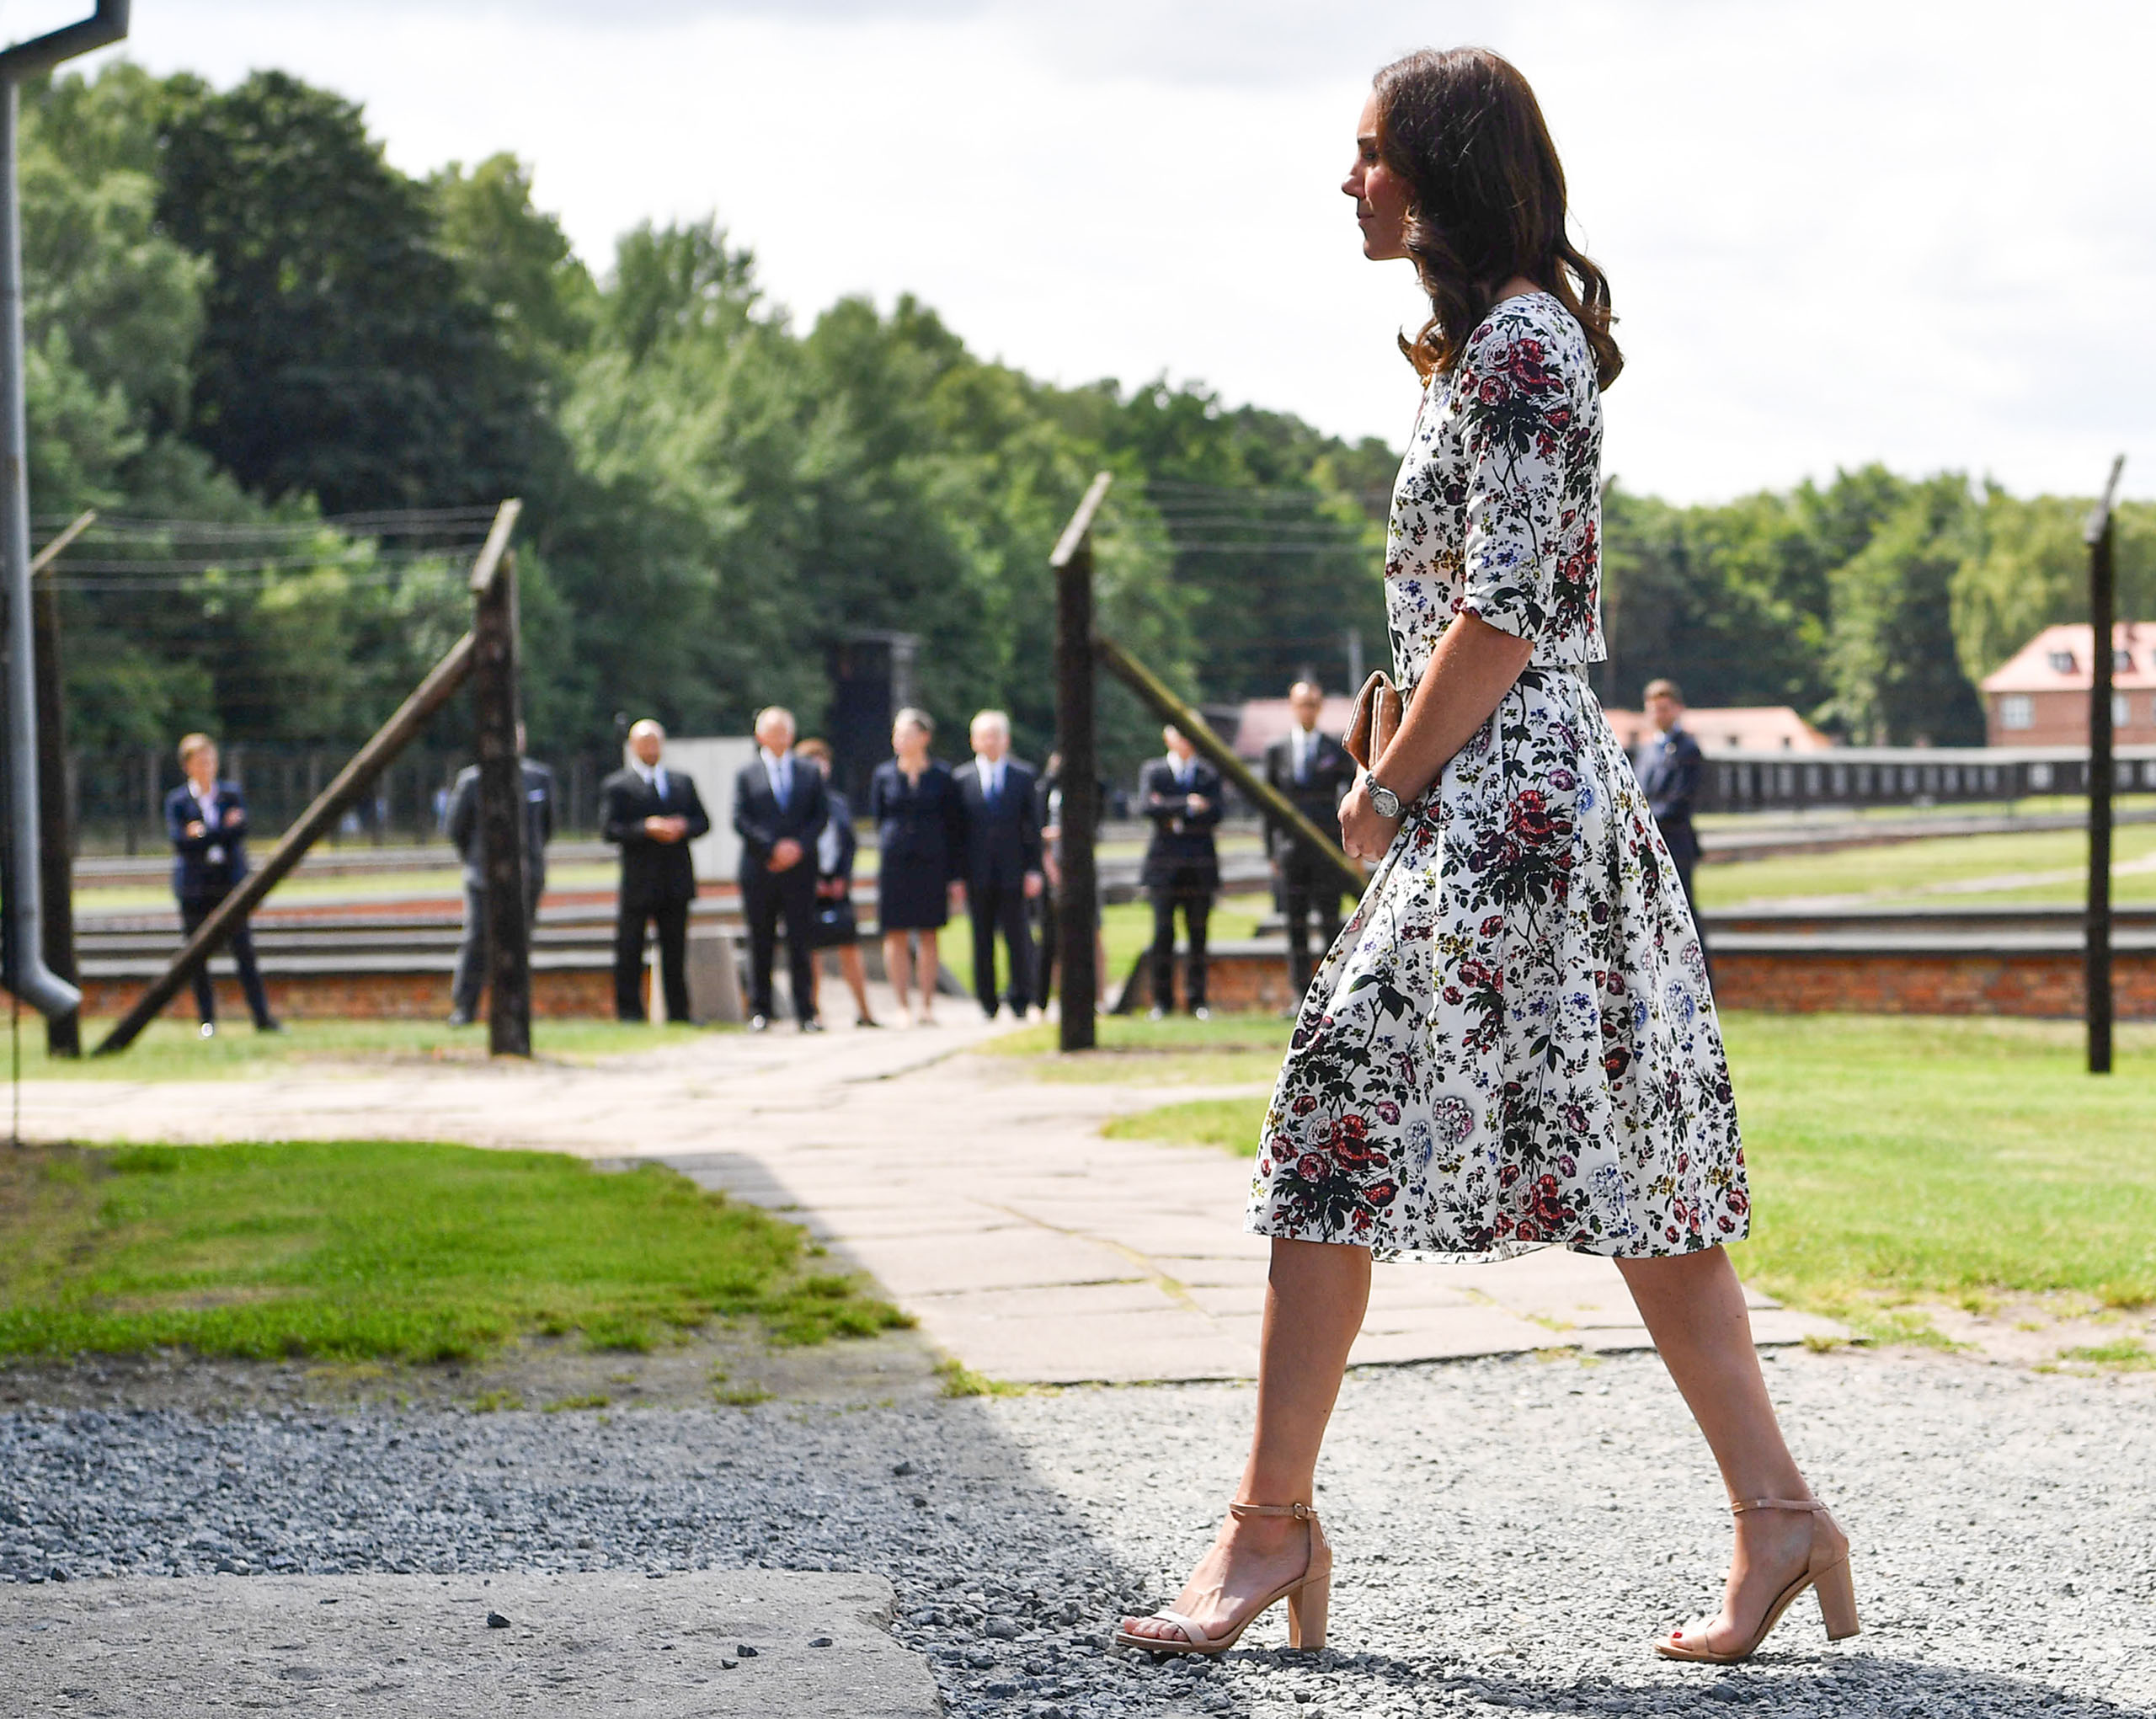 Catherine, Duchess of Cambridge visits Stutthof, the former Nazi Germany Concentration Camp during day 2 of their Royal Tour of Poland and Germany on July 18, 2017.